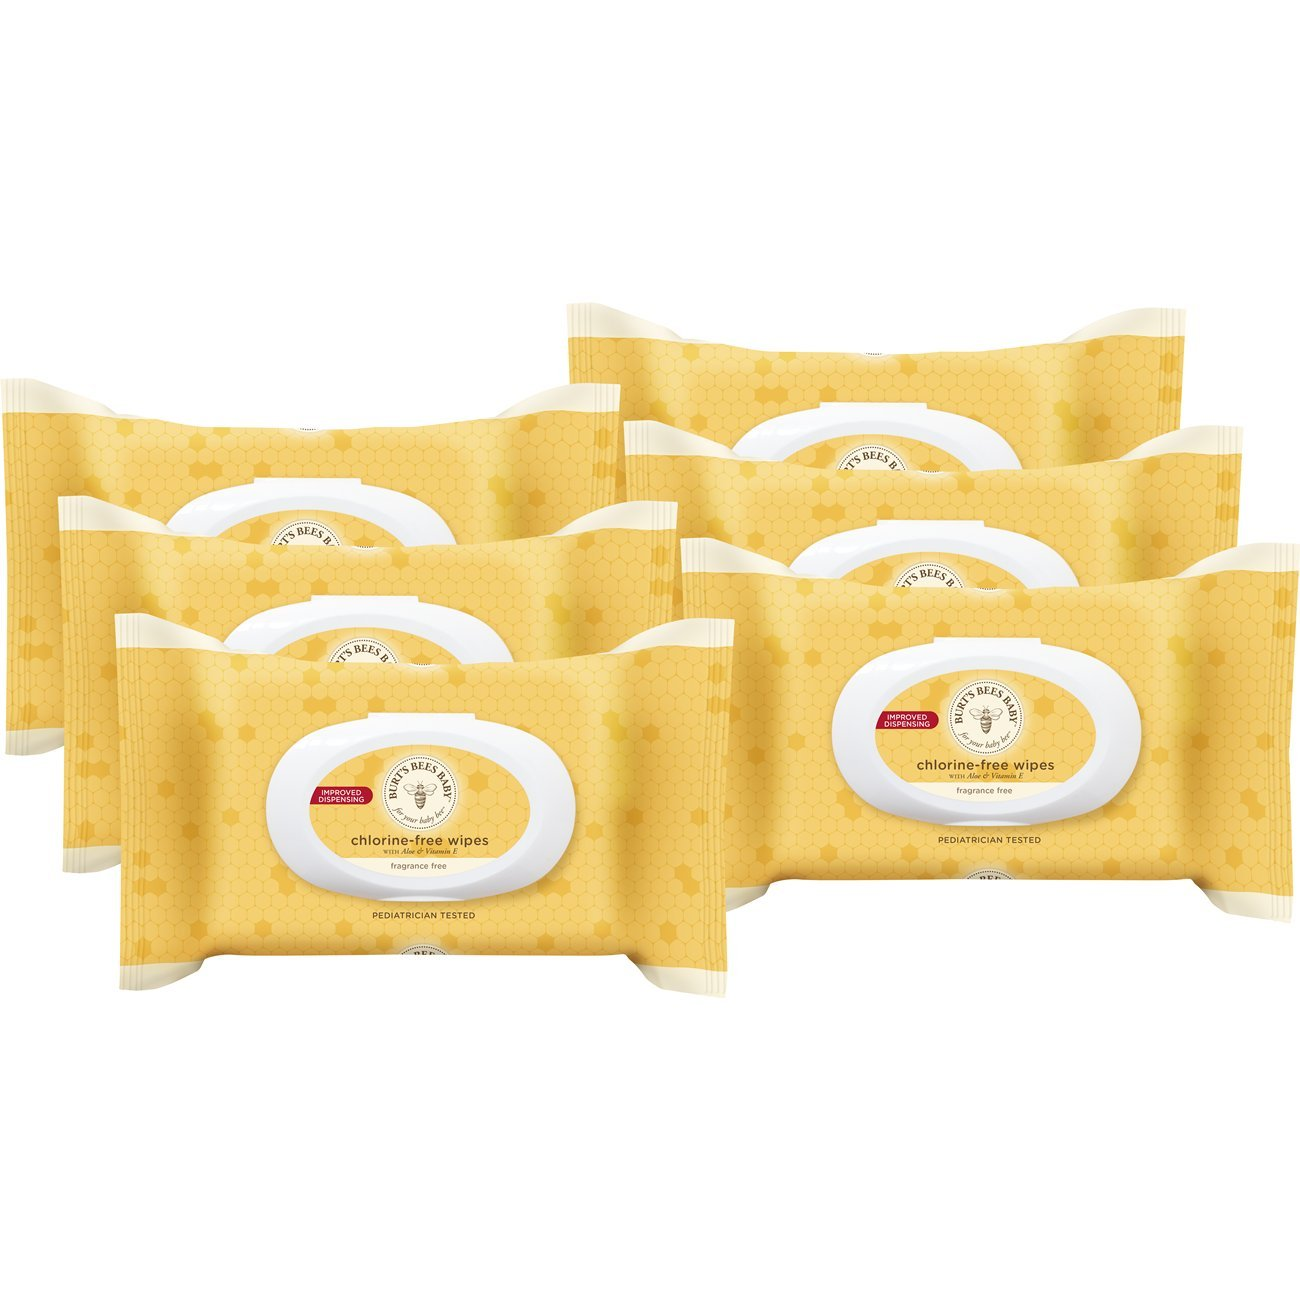 Burt's Bees Baby Chlorine-Free Wipes, Unscented Natural Baby Wipes – 6 Packs of 72 Wipes (432 Count)